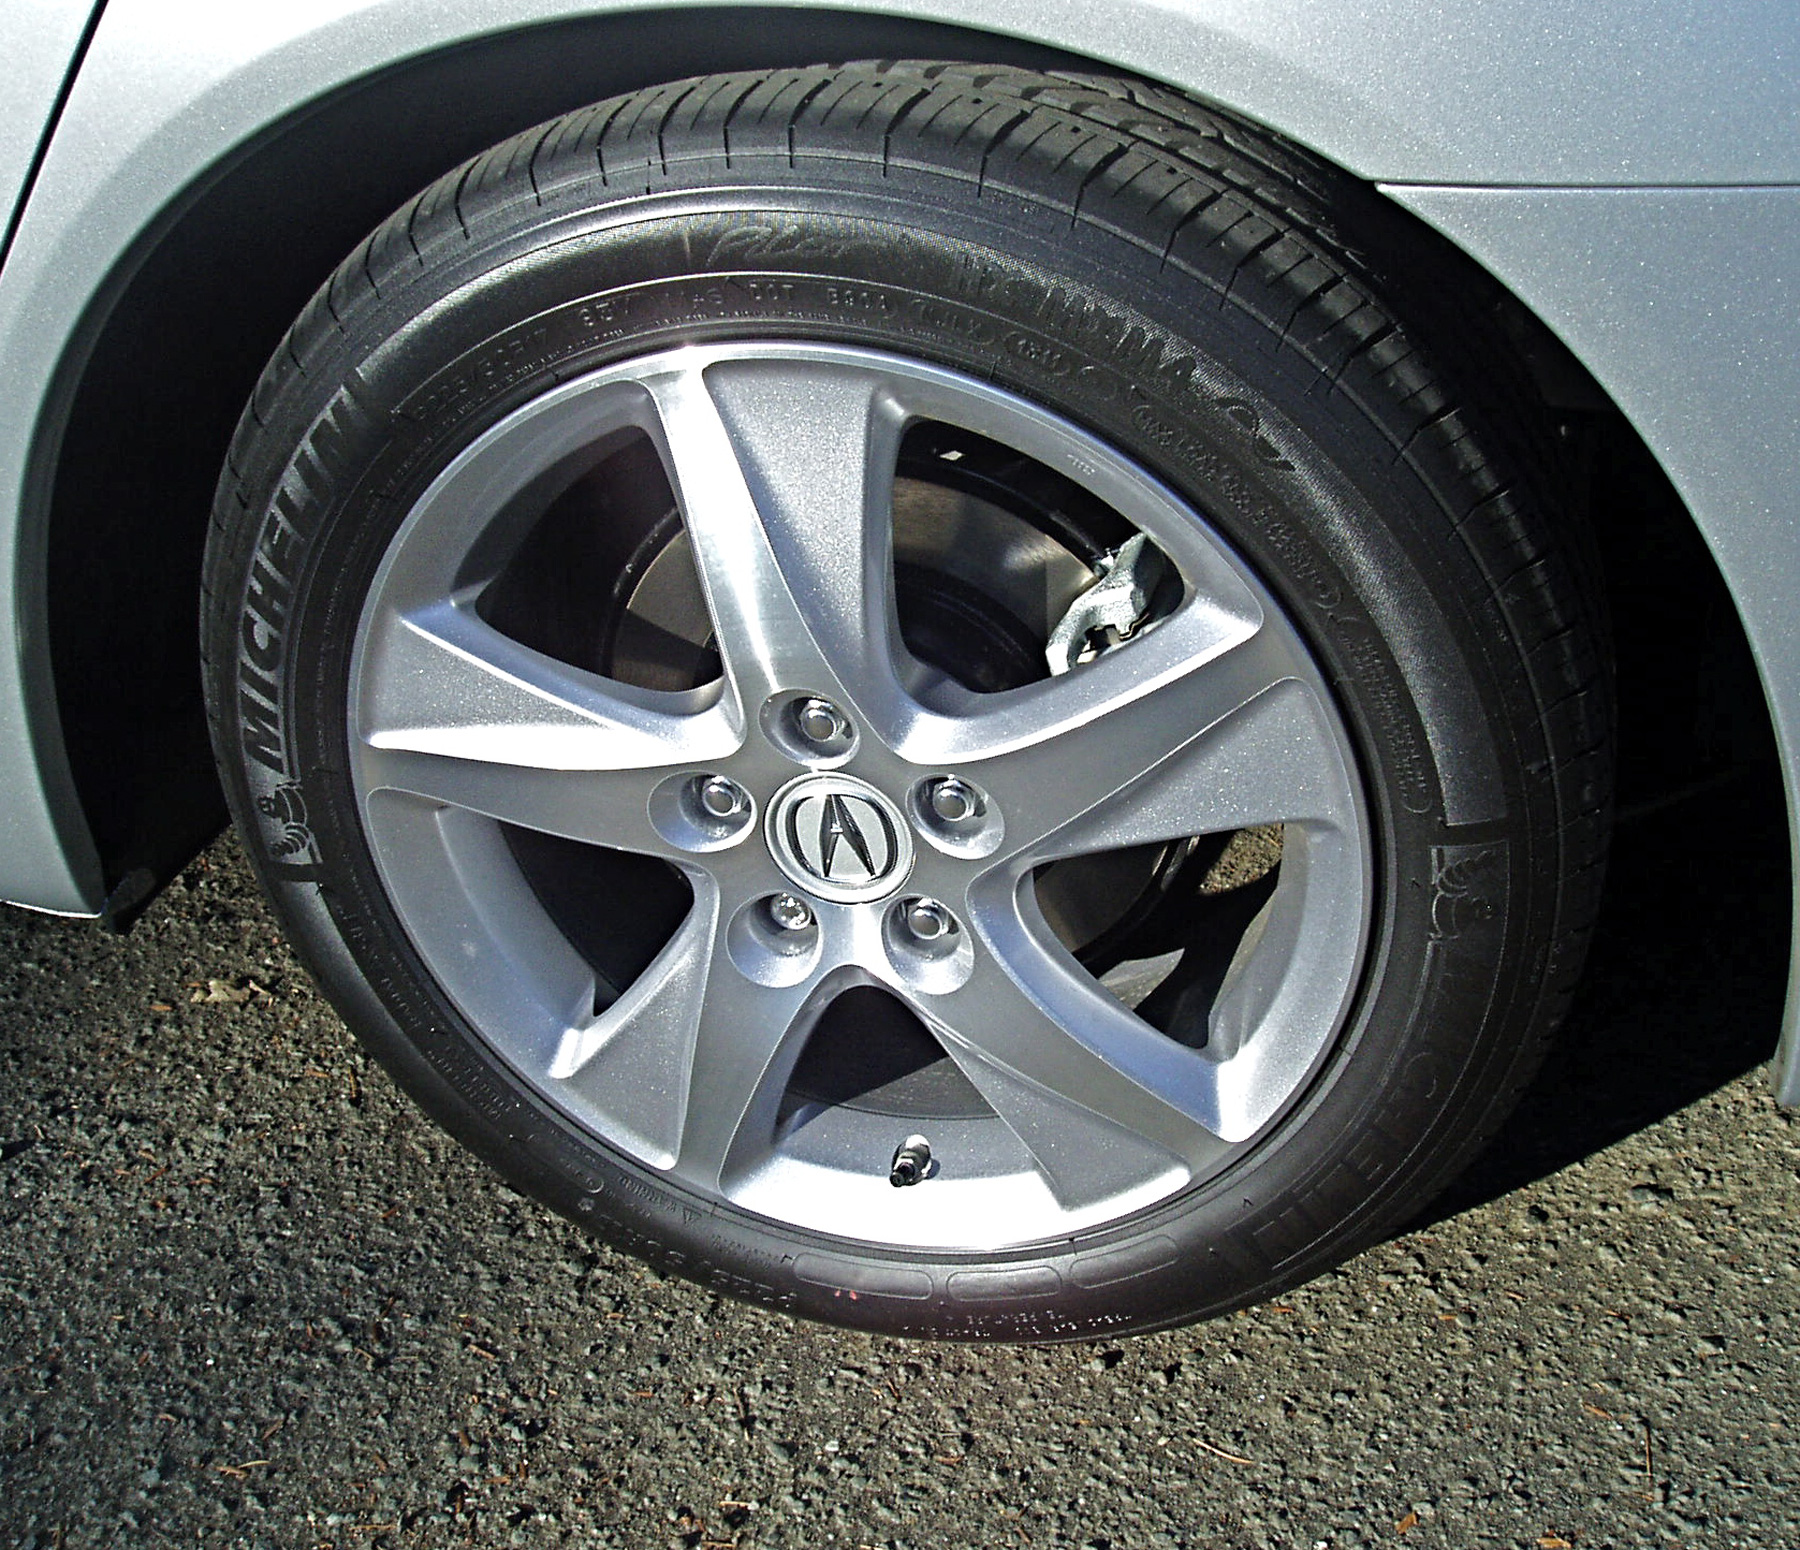 Test Drive: 2012 Acura TSX Tech Sedan